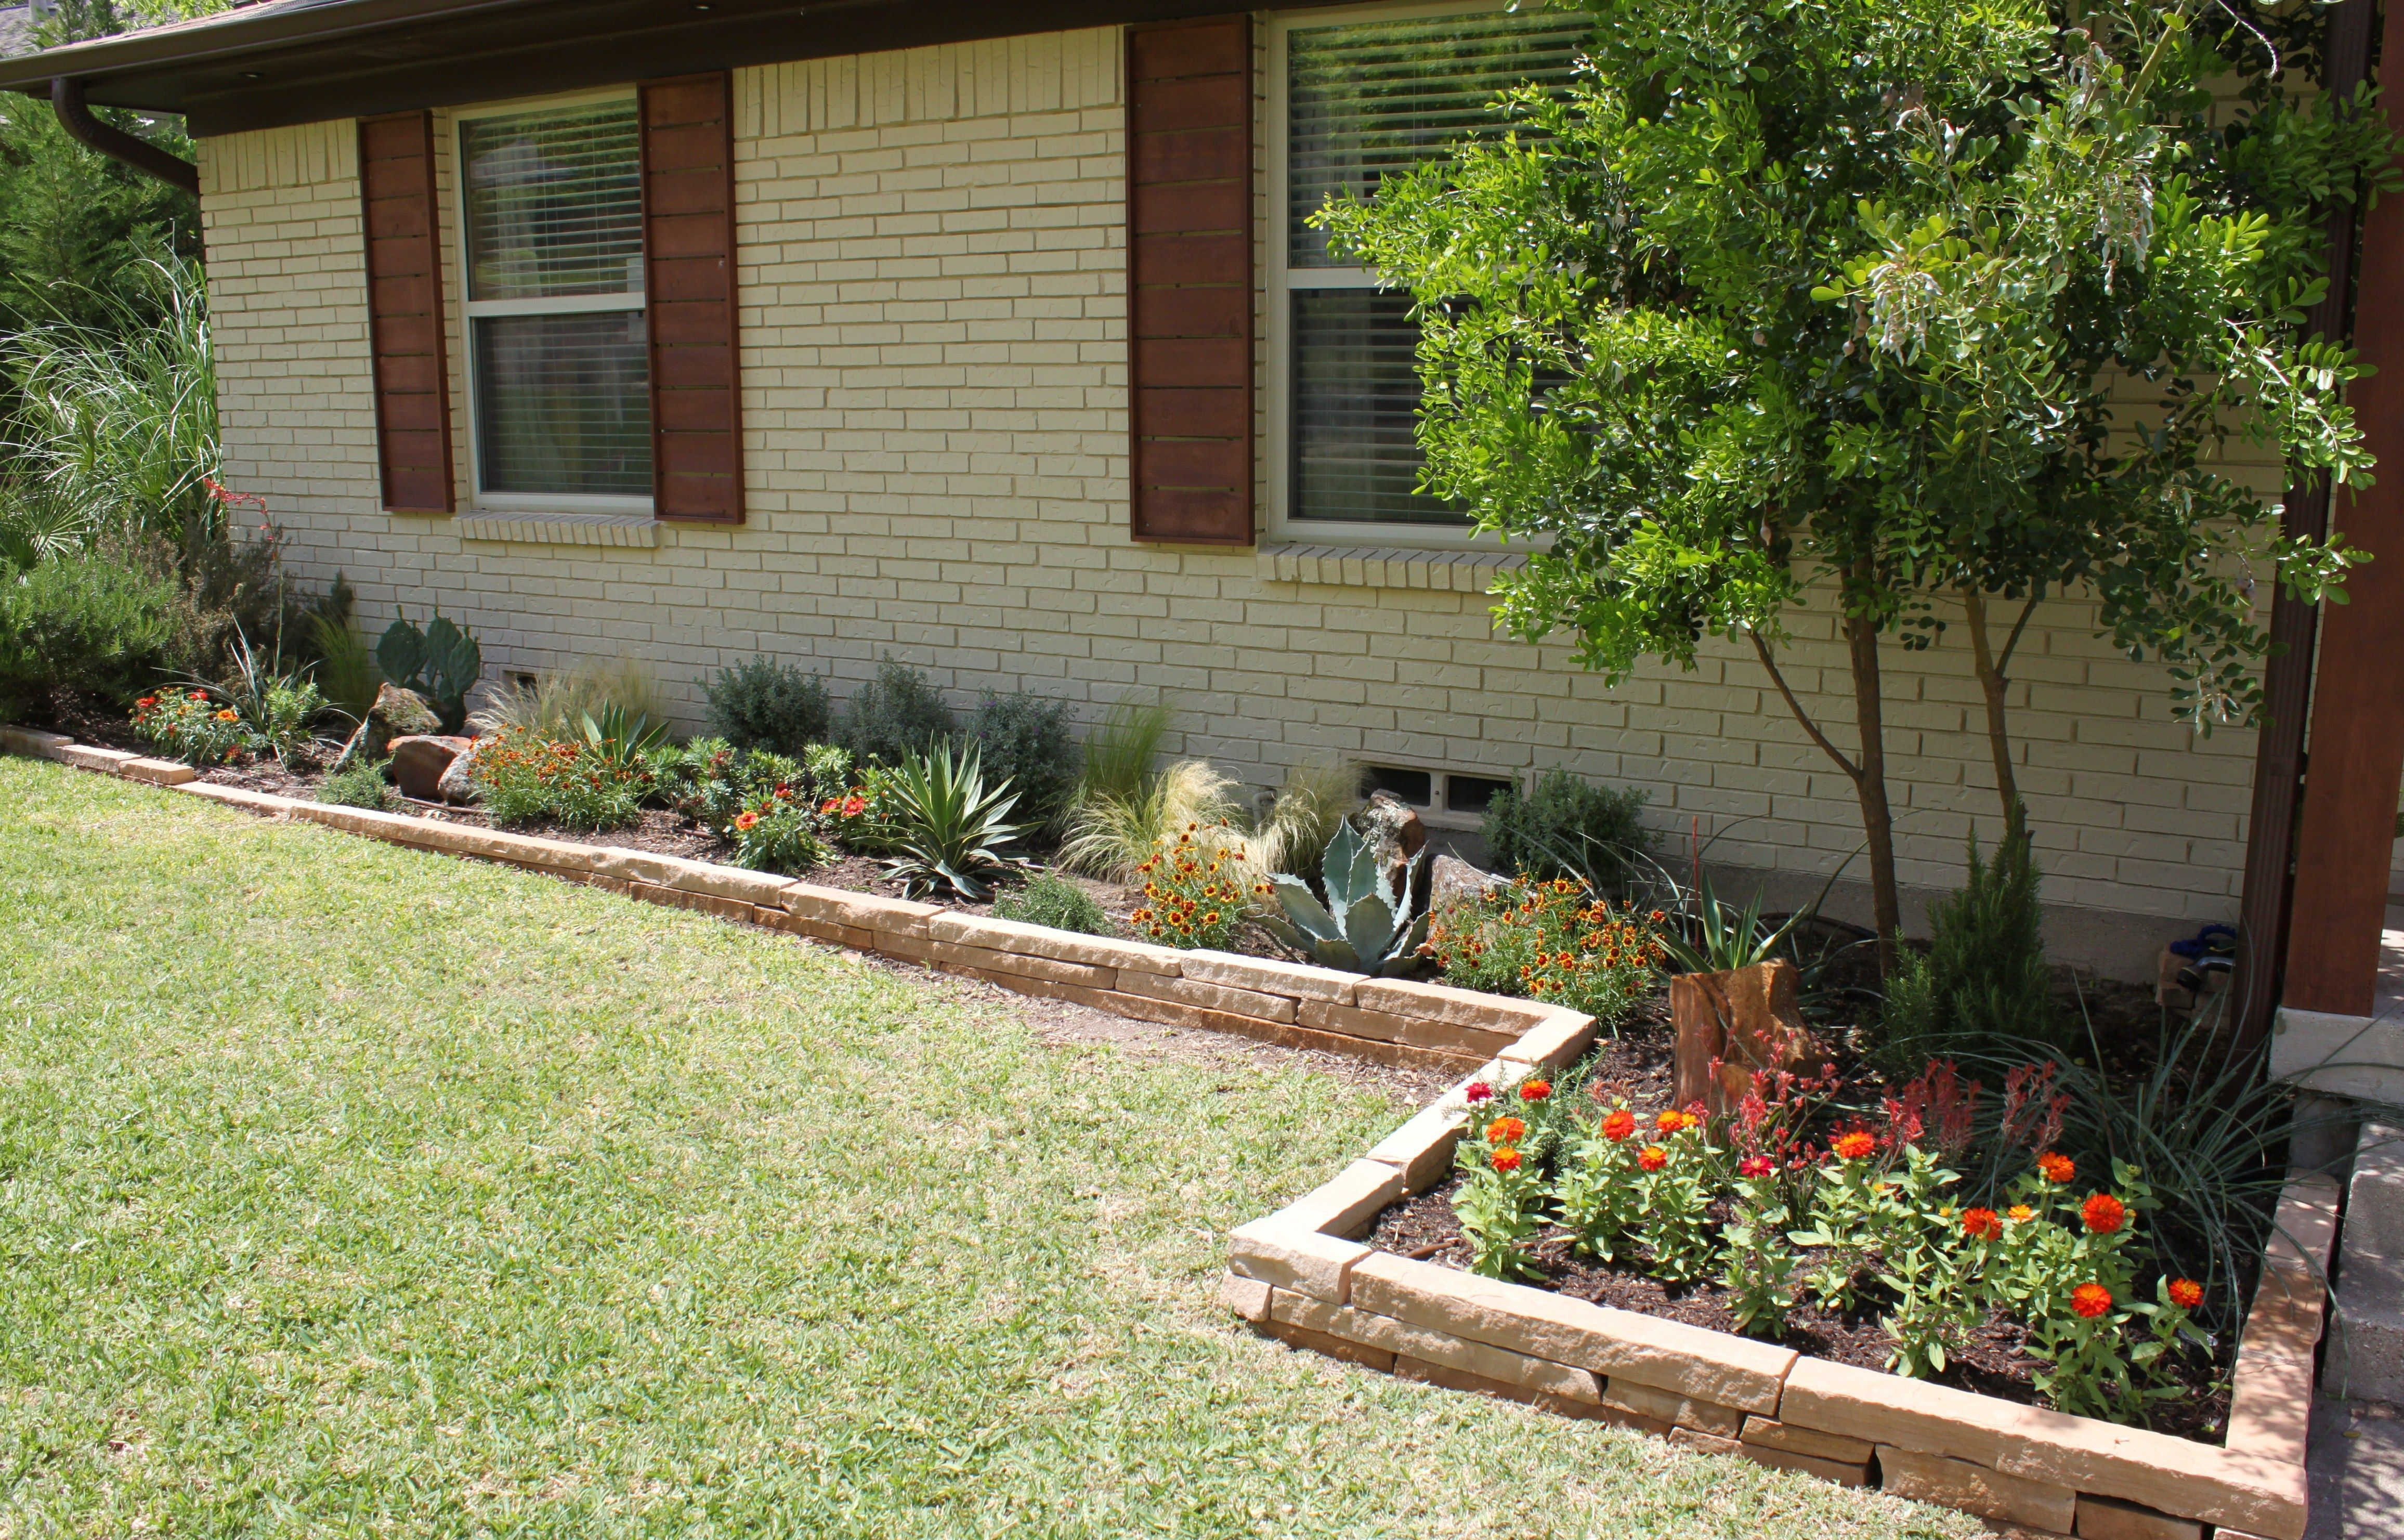 Raised Garden Bed Ideas Front Of House. Feels free to